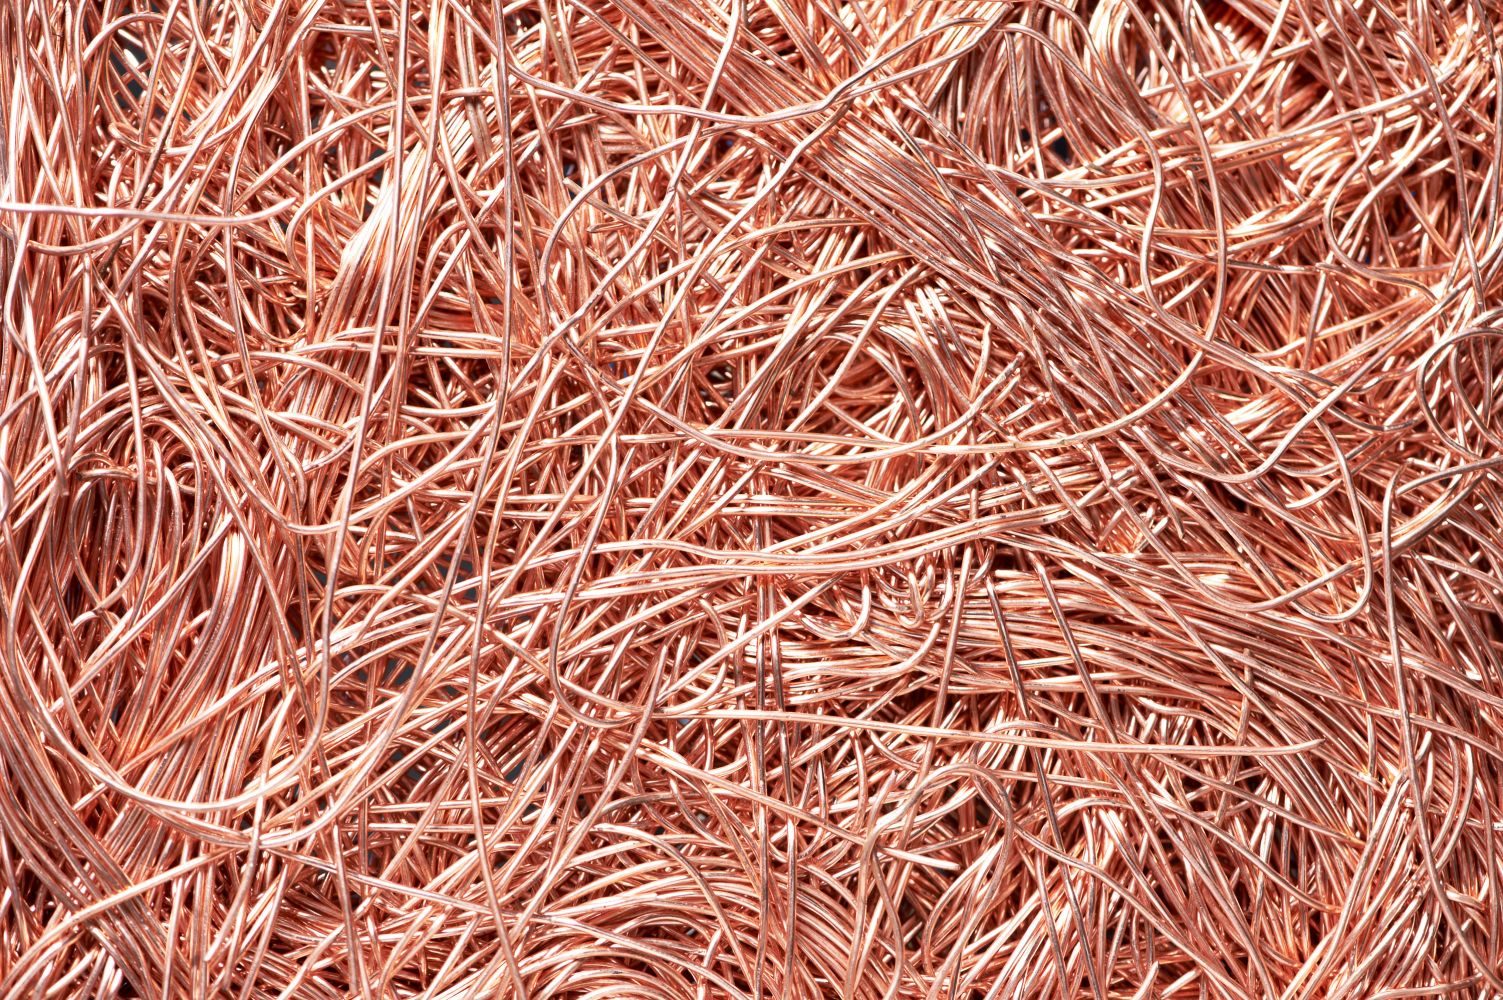 Copper recycling specialist in Honolulu, HI